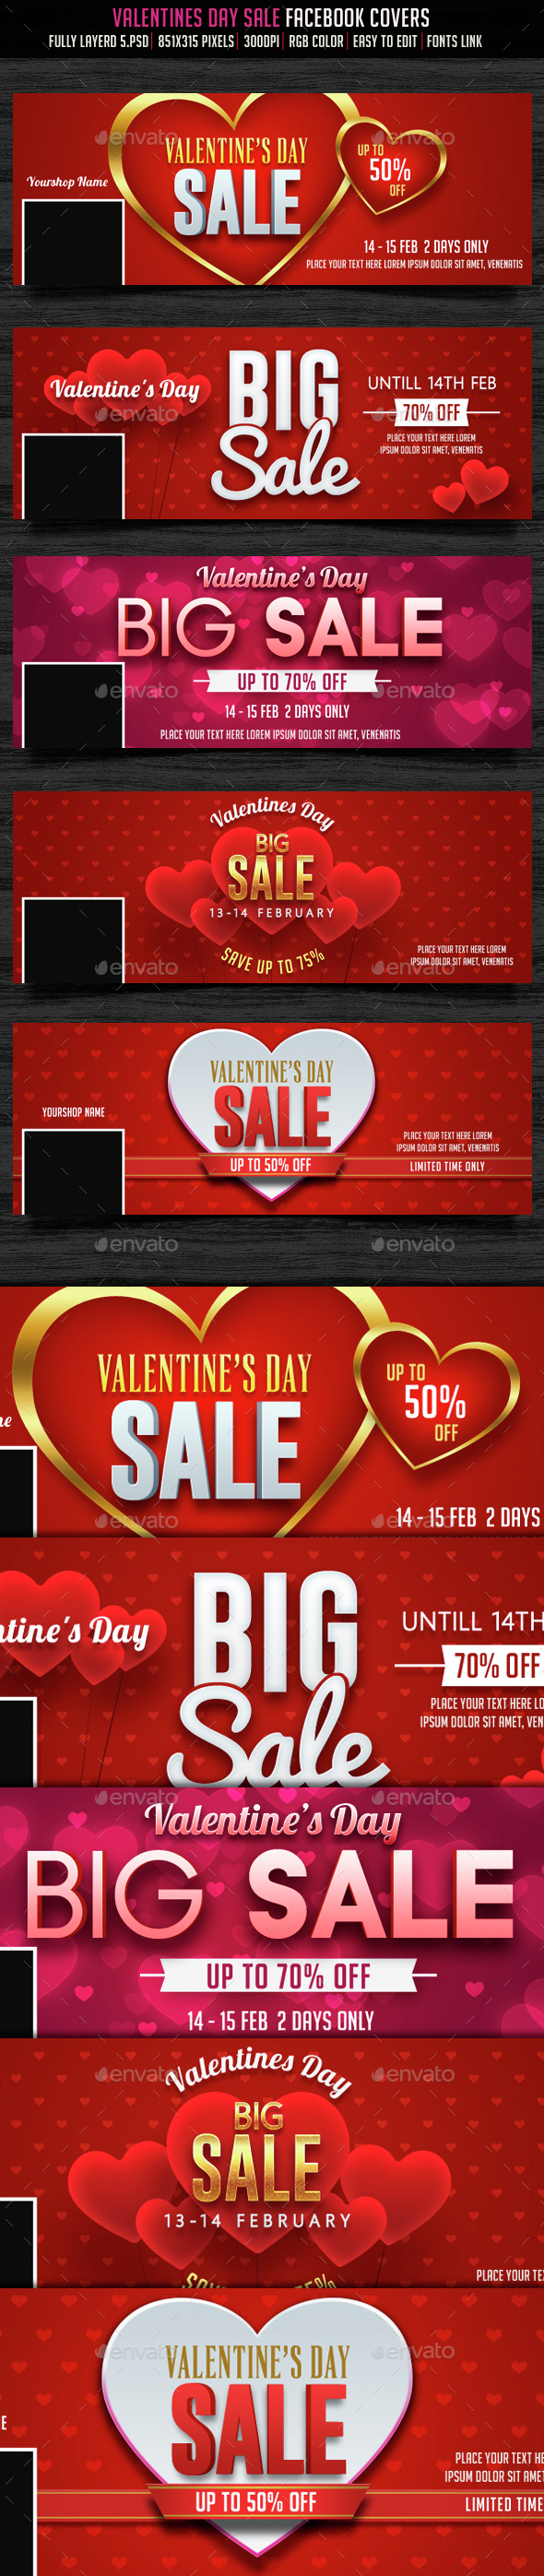 Valentines Day Sale Facebook Cover